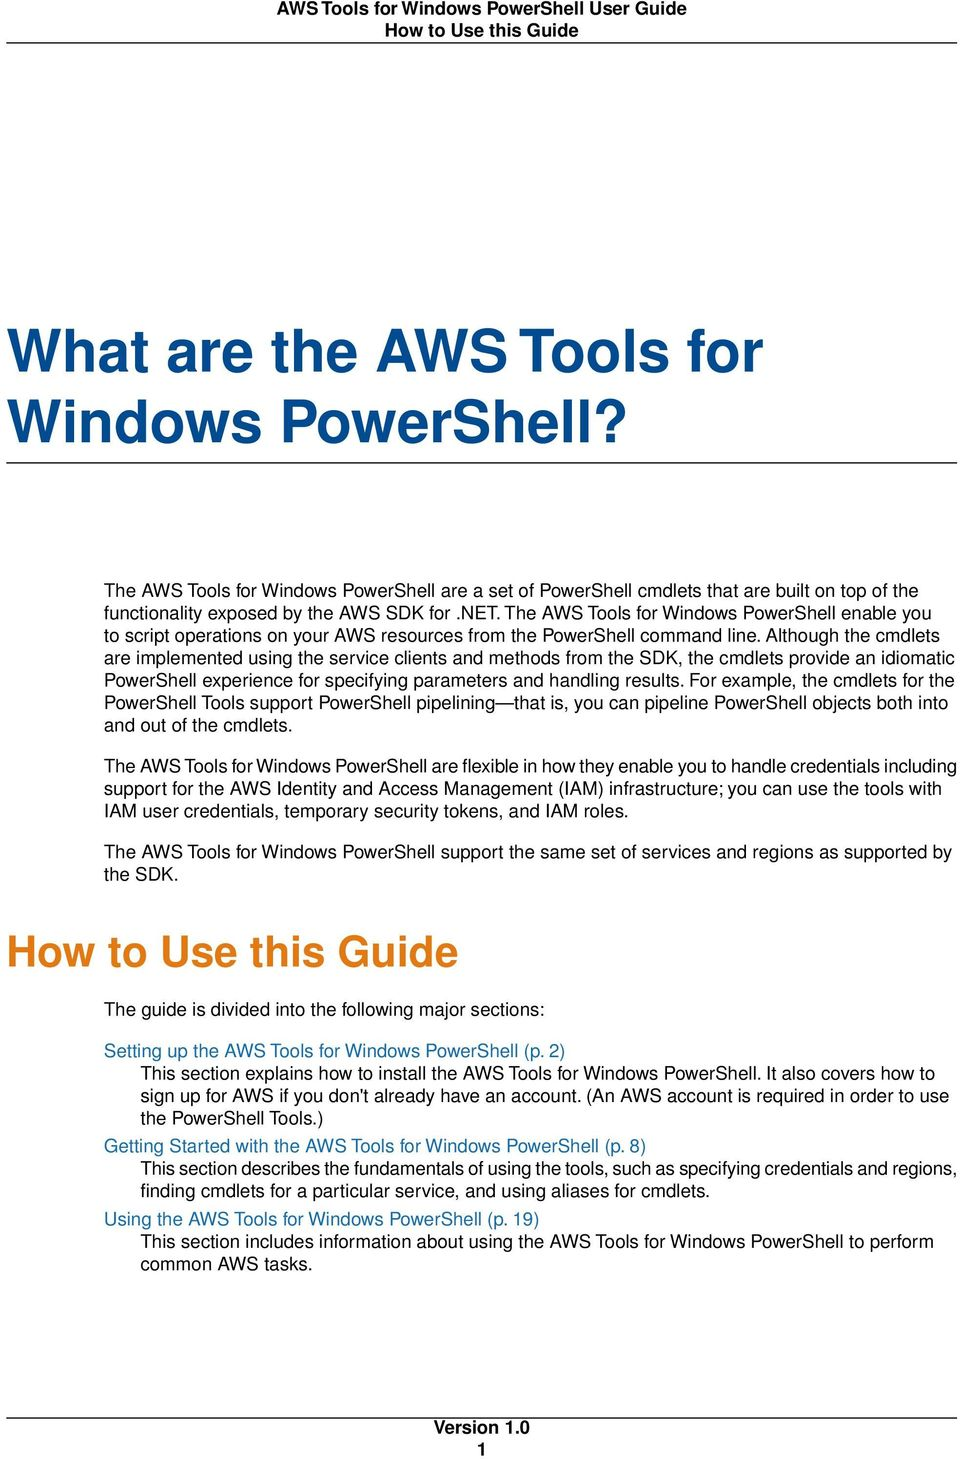 The AWS Tools for Windows PowerShell enable you to script operations on your AWS resources from the PowerShell command line.